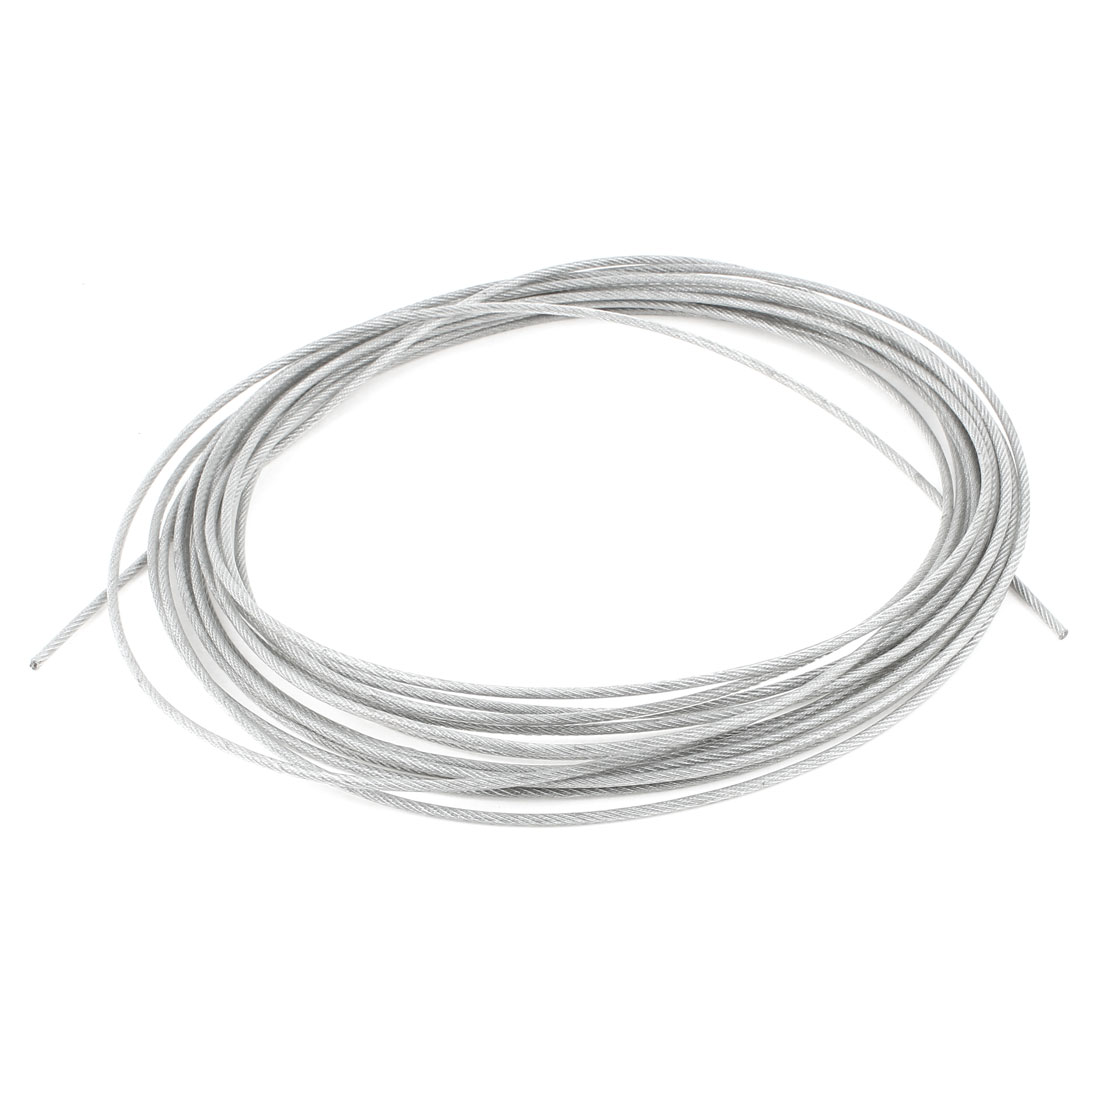 3mm Dia Steel Clear PVC Coated Flexible Wire Rope Cable 15 Meter